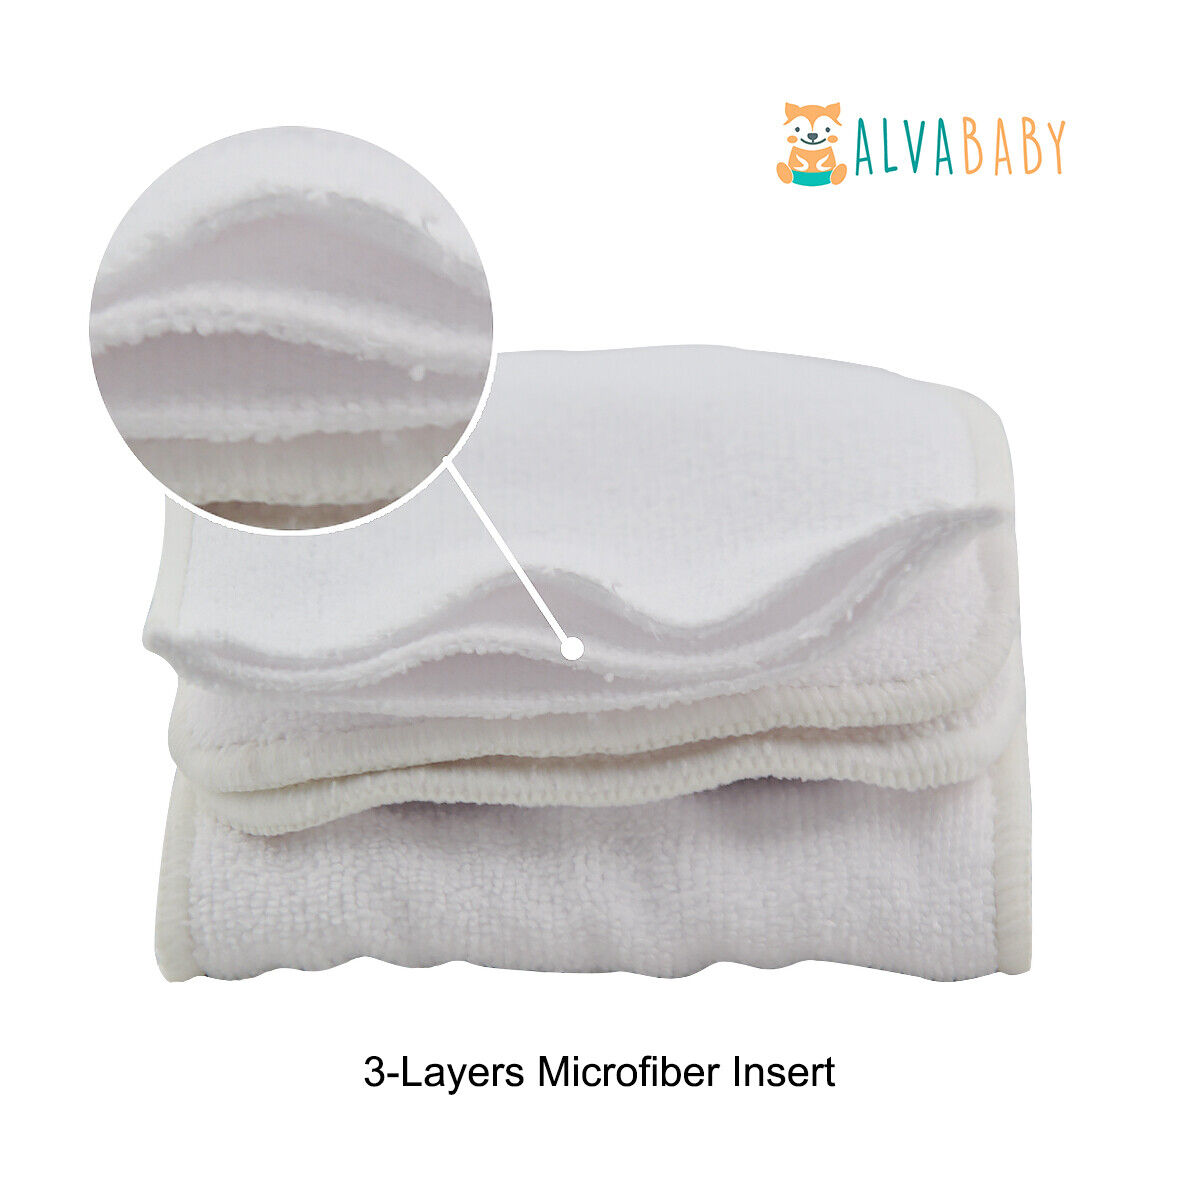 ALVABABY Cloth Diapers One Size Reusable Washable Pocket Nappy + Insert U Pick With 1 Microfiber Insert